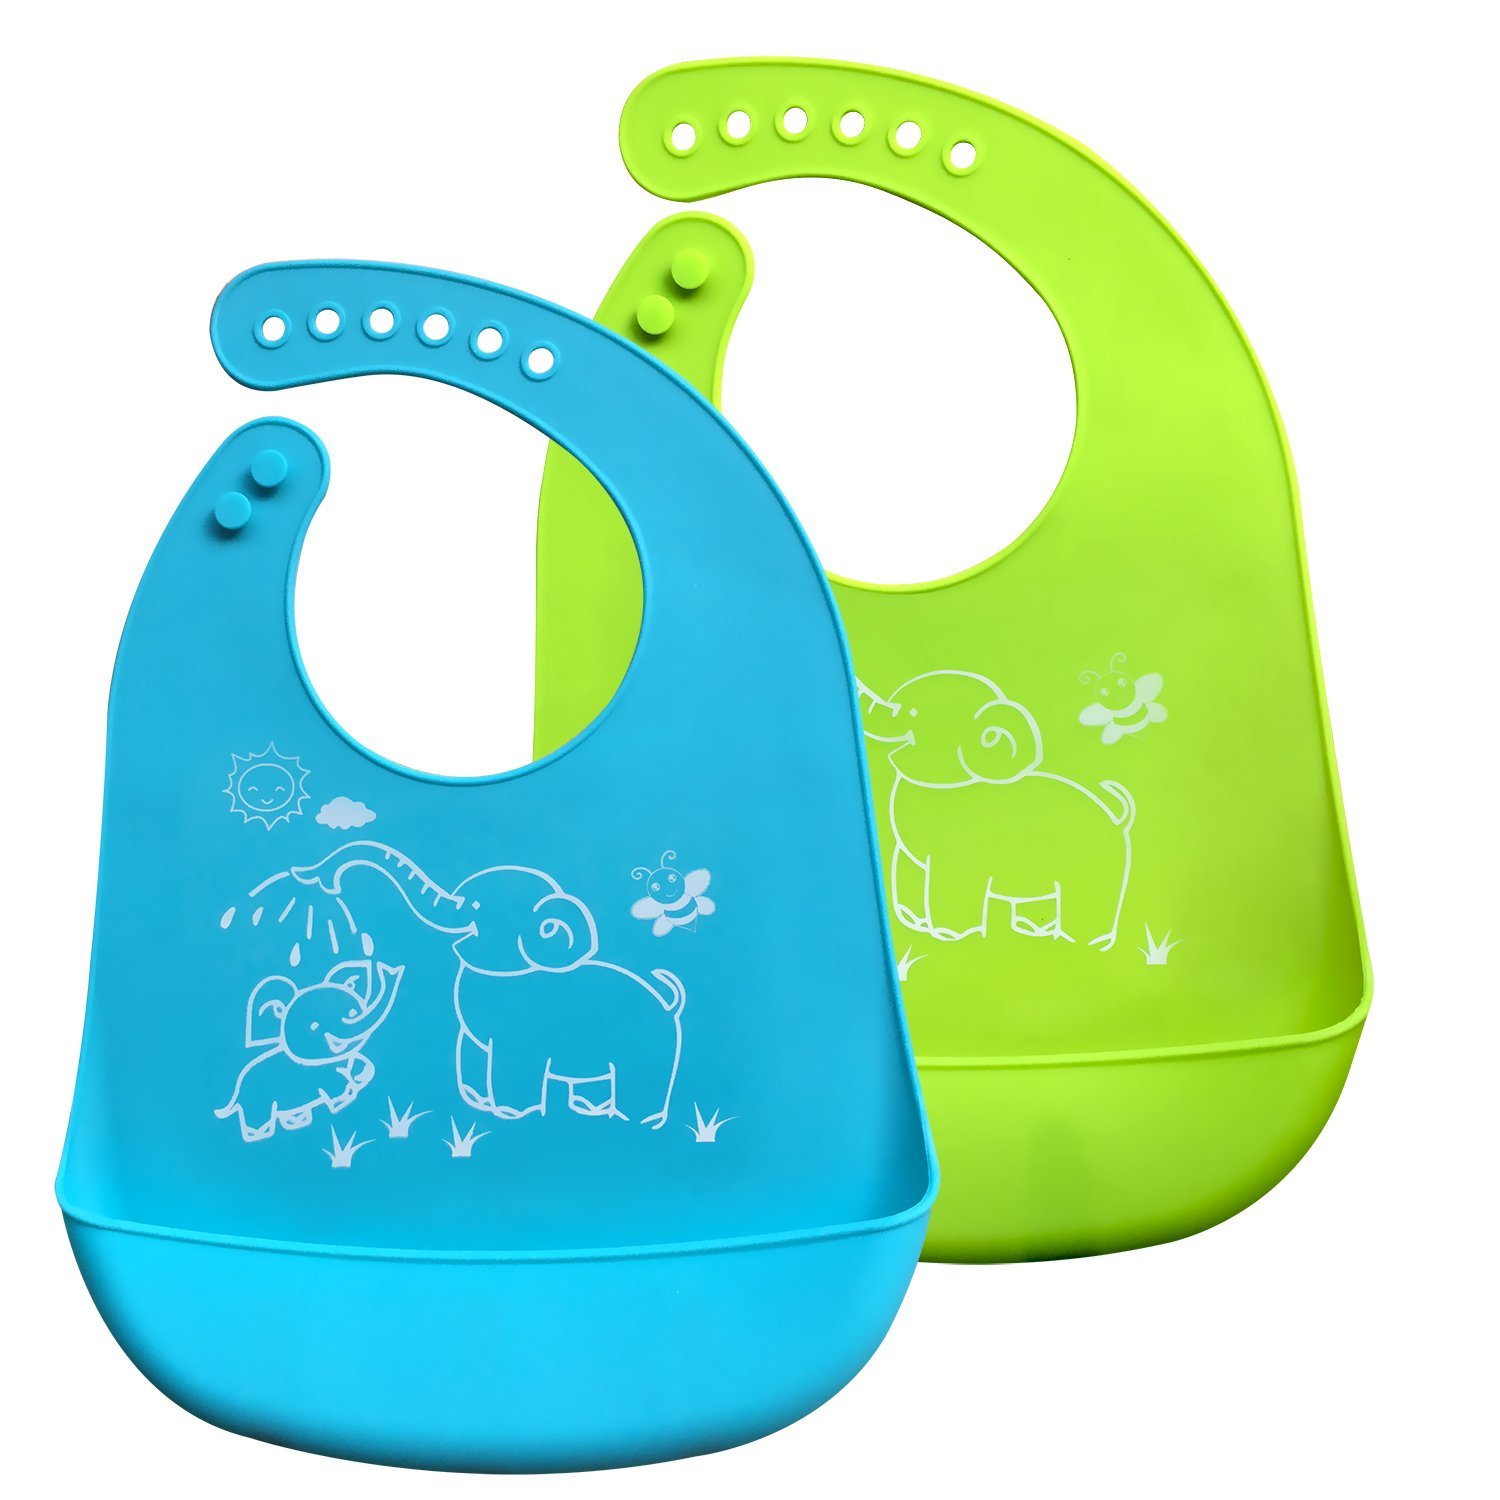 Keeps Clothes Clean Super Baby Waterproof Silicone Bib for Babies & Toddlers Saves Time With Cleanup